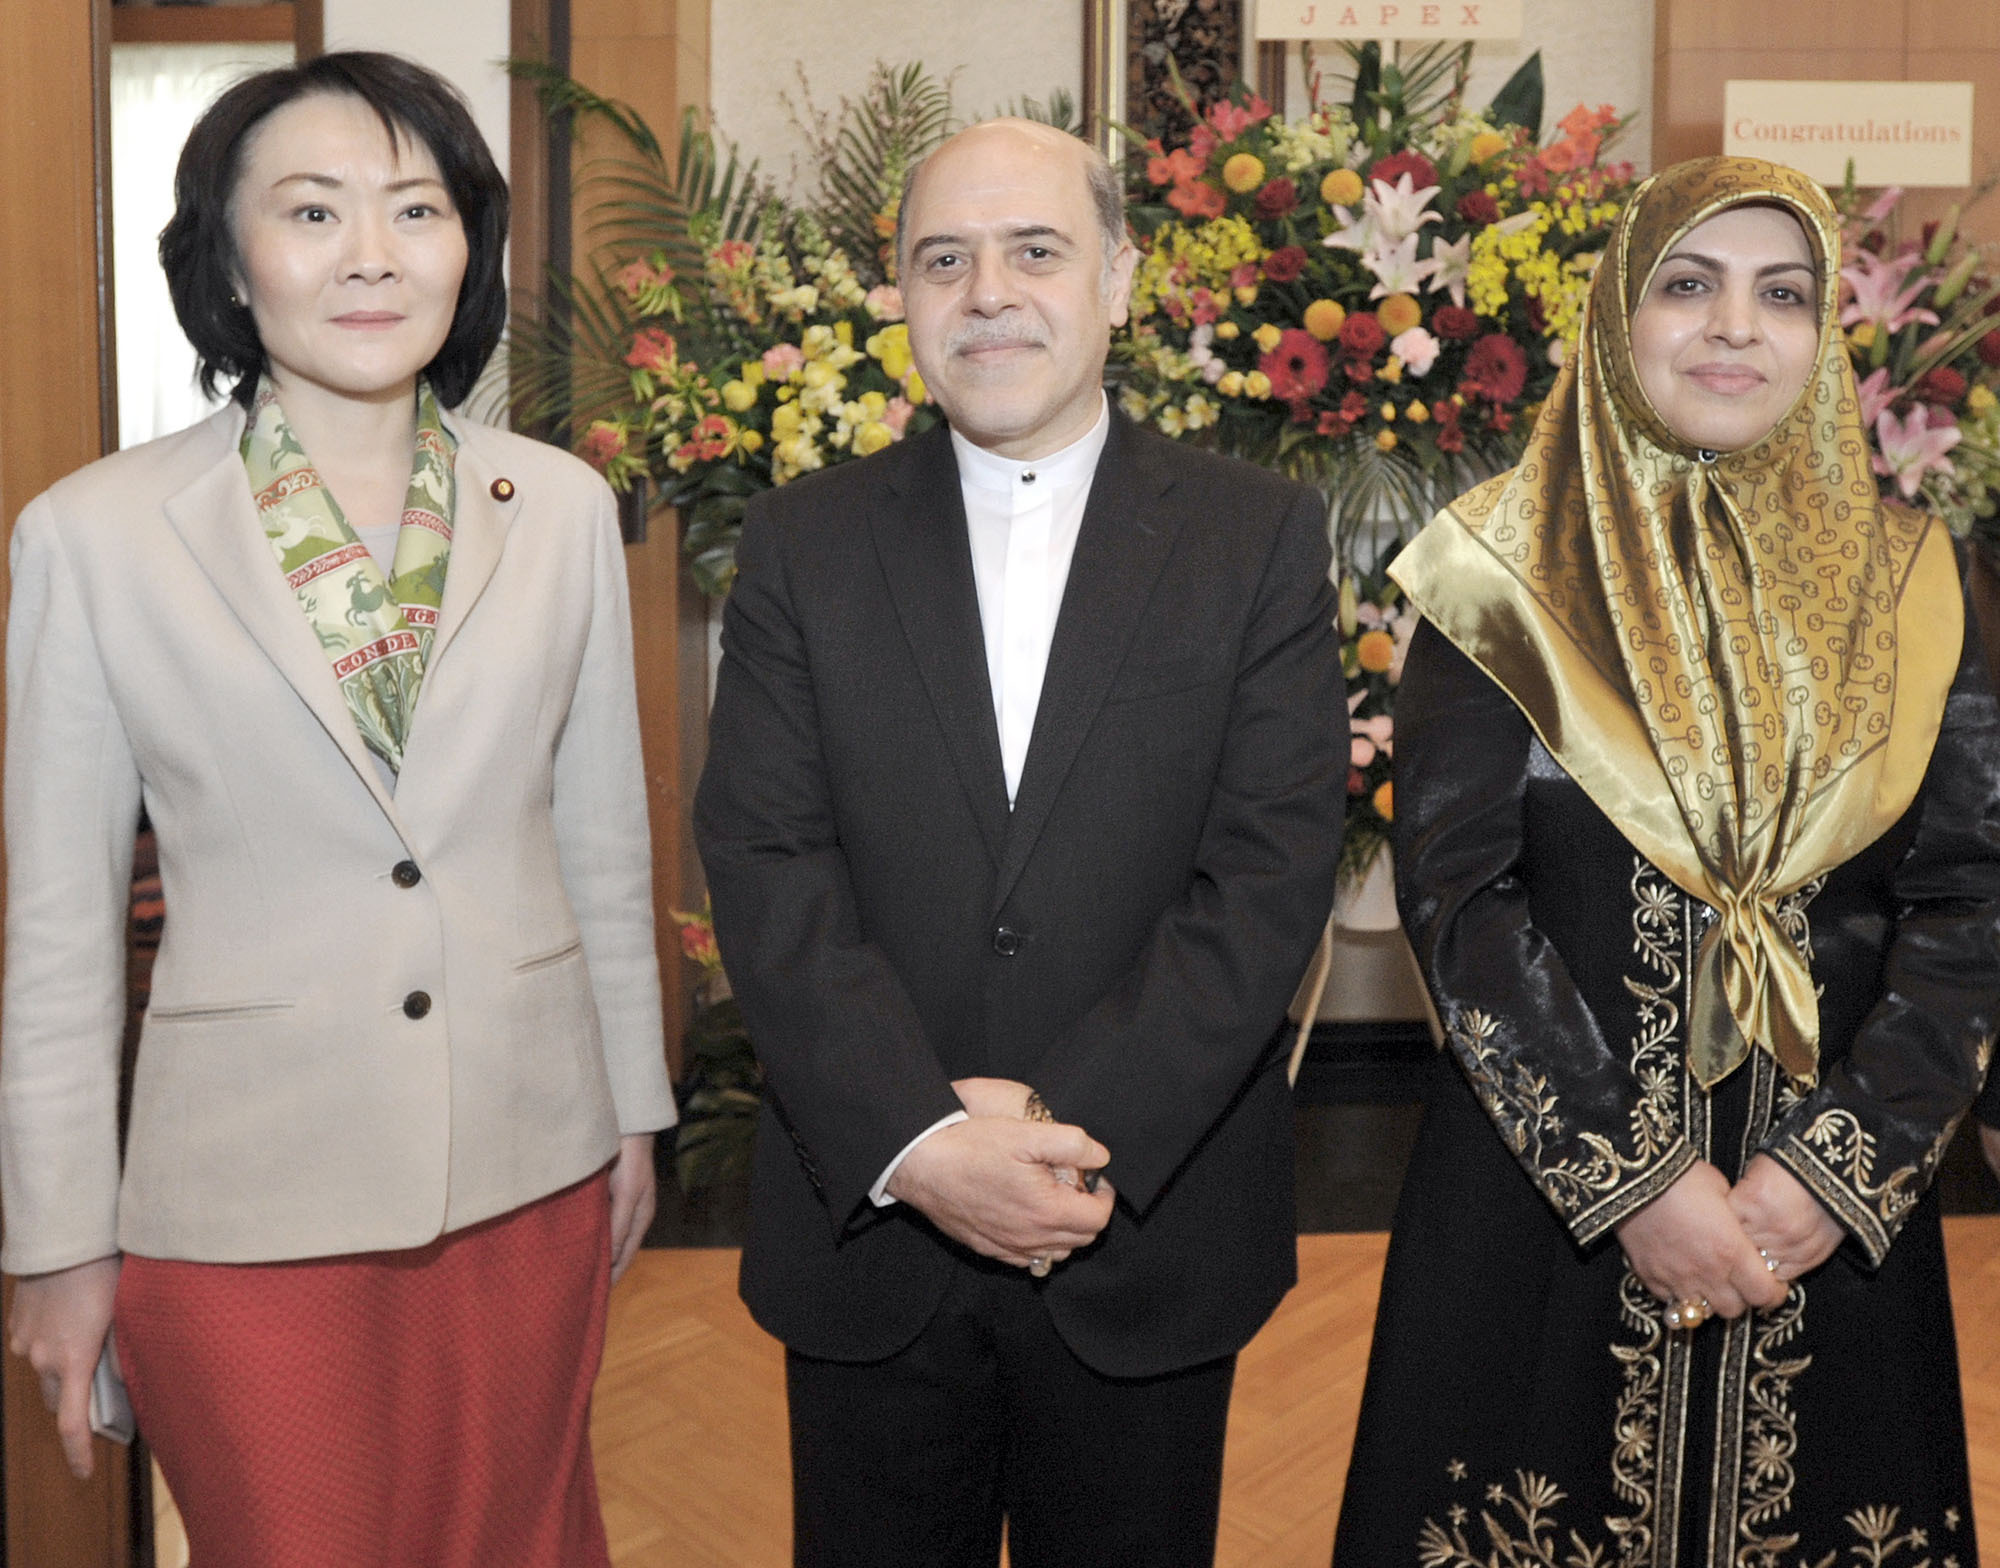 Iran Ambassador Reza Nazar Ahari (center) and his wife Sedigheh (right) welcome Parliamentary Vice-Minister for Foreign Affairs Miki Yamada, during a reception to celebrate the 37th Anniversary of the Islamic Revolution of Iran at the embassy in Tokyo on Feb. 10. | YOSHIAKI MIURA